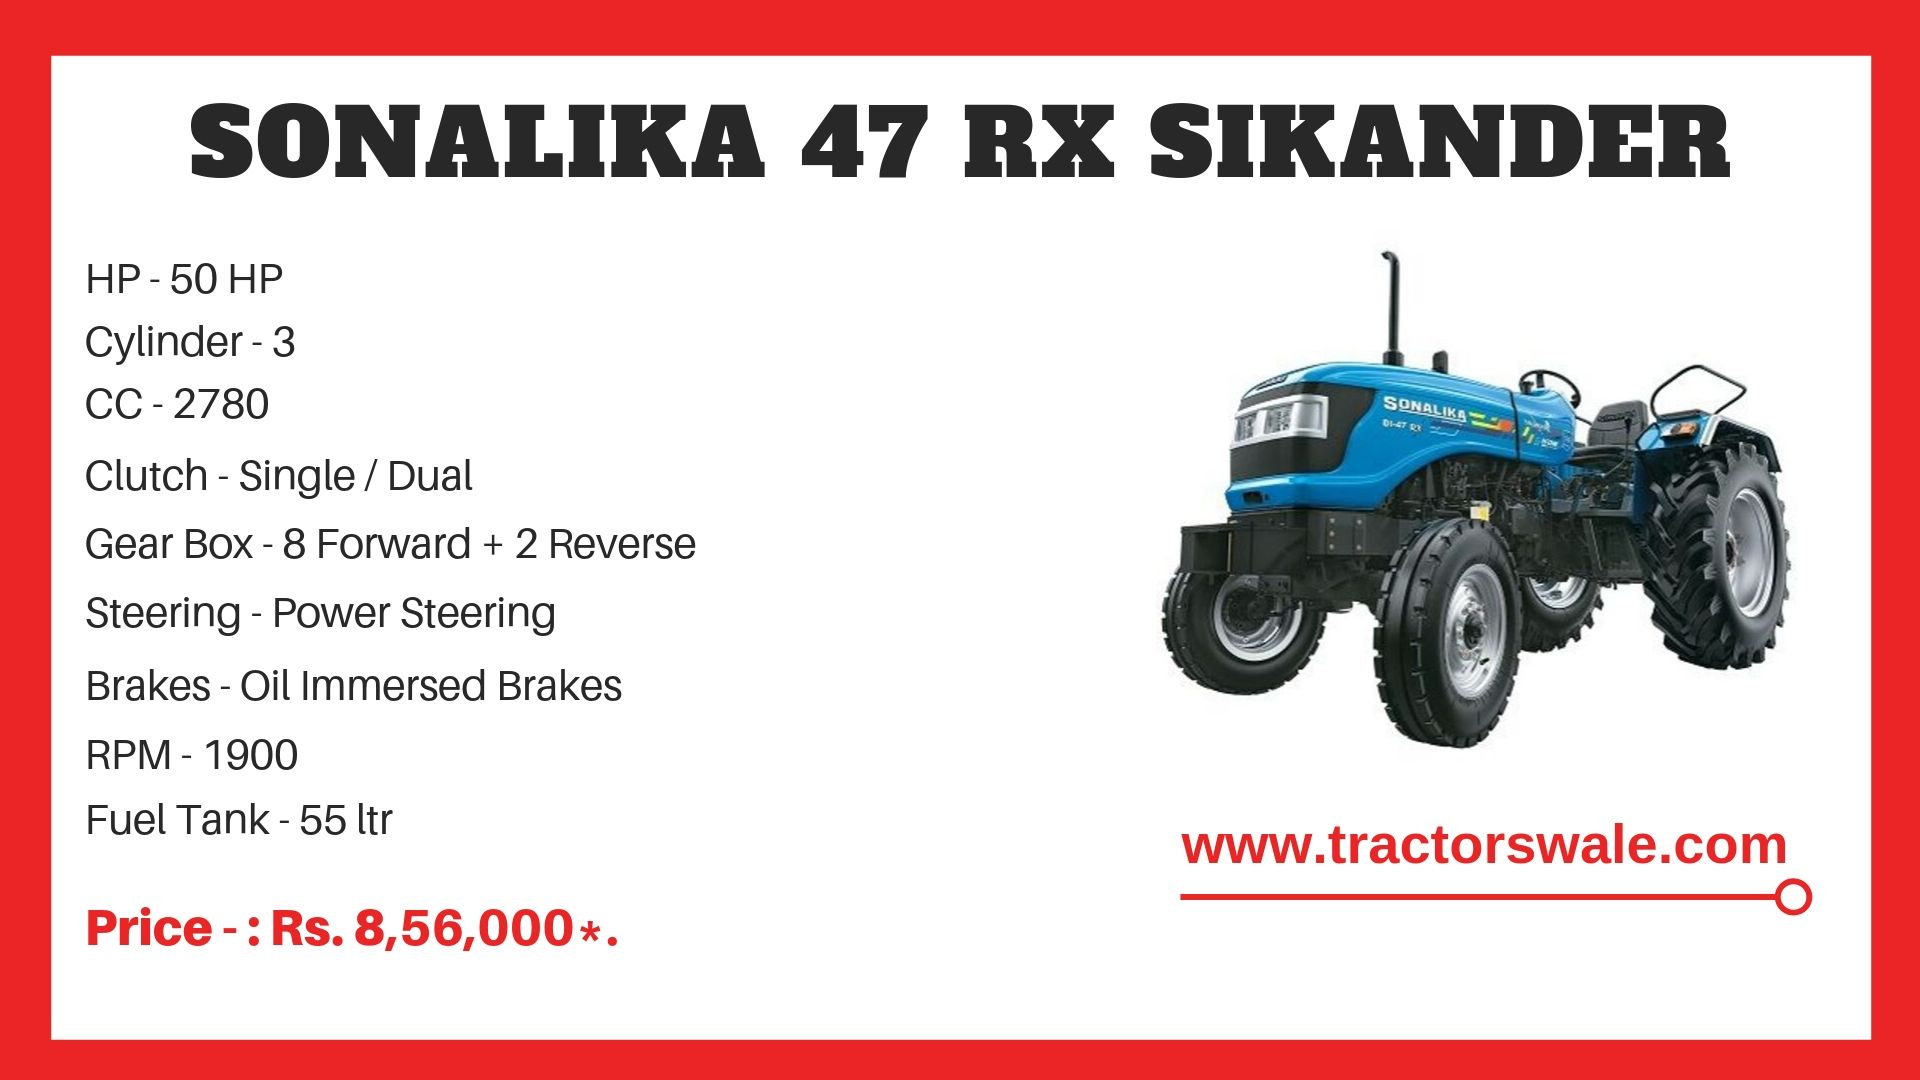 Sonalika 47 RX Sikander tractor specs